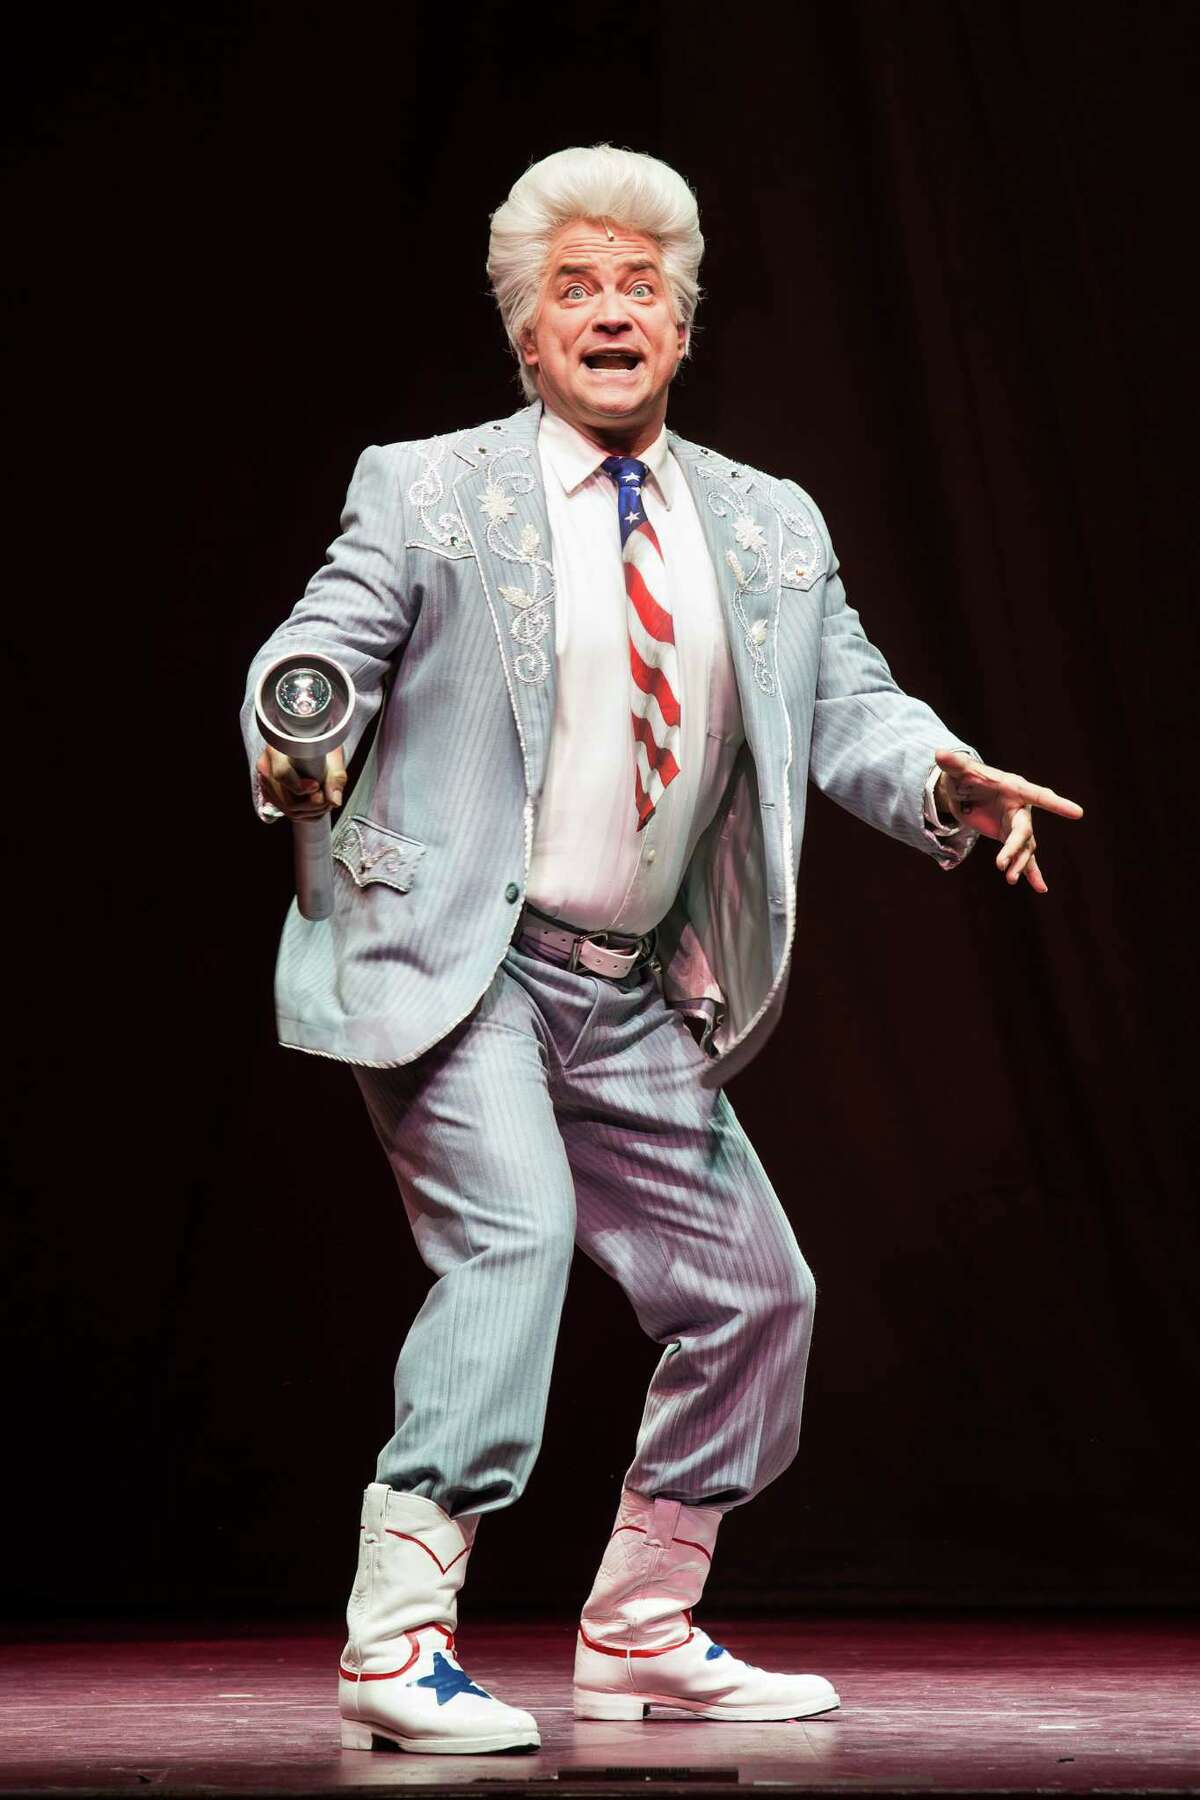 """Michael Tapley will reprise his role as Melvin P. Thorpe in the Theater Under The Stars production of """"The Best Little Whorehouse in Texas."""""""